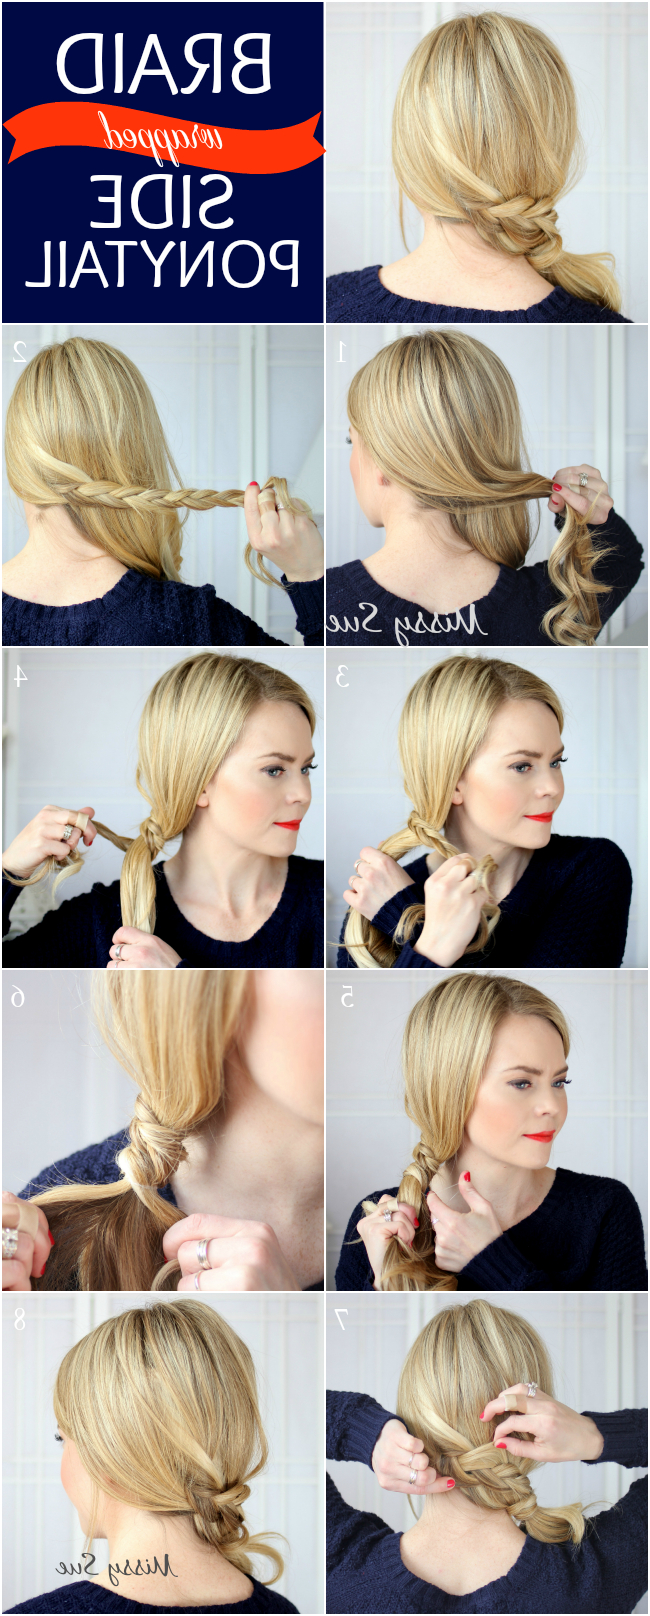 2020 Wrapped Ponytail Braid Hairstyles Within Braid 12 Braid Wrapped Side Ponytail (View 5 of 20)